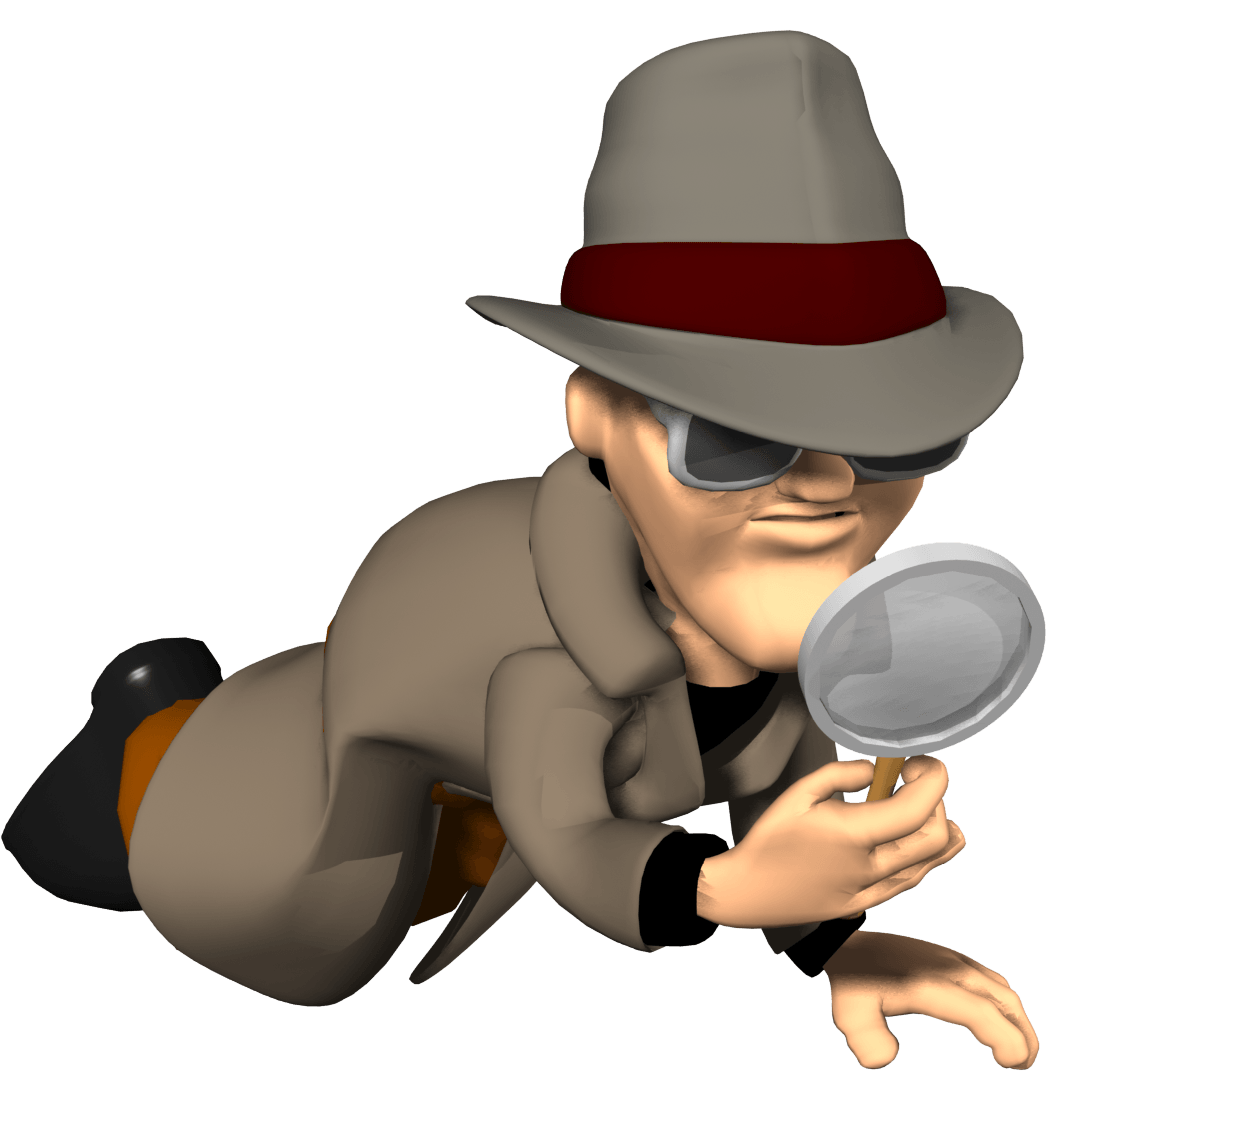 Partners clip arts for. Detective clipart image black and white stock